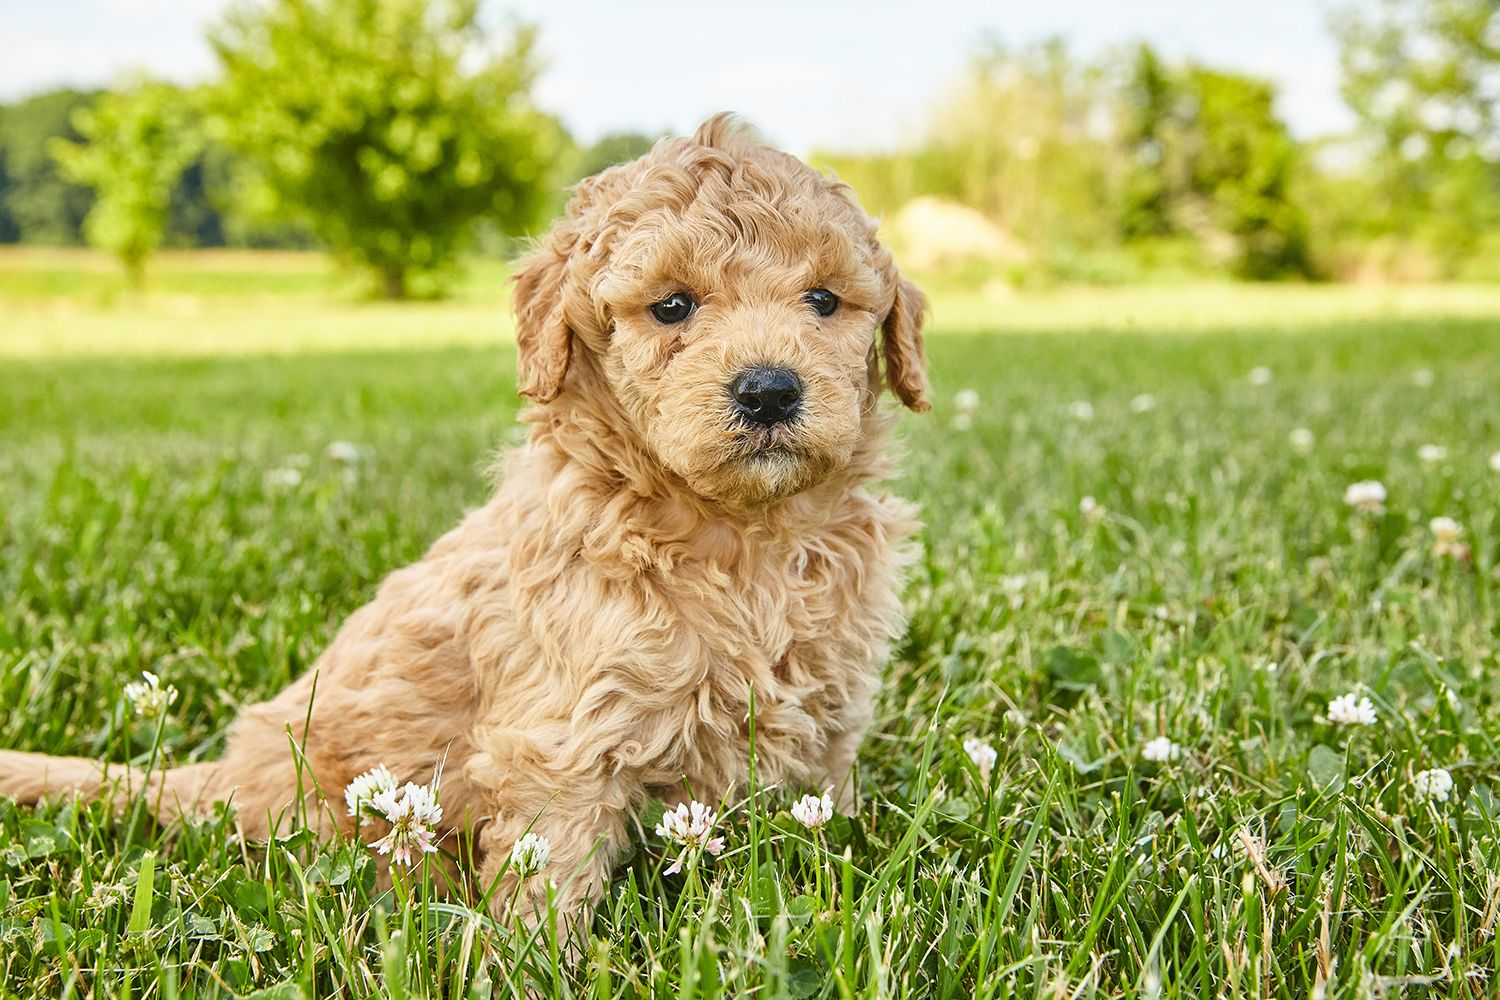 Have You Met Our Cutest Litter These F1b Mini Goldendoodles Will Melt Your Heart With Their Cuteness We Have Males And Puppies Goldendoodle Golden Retriever